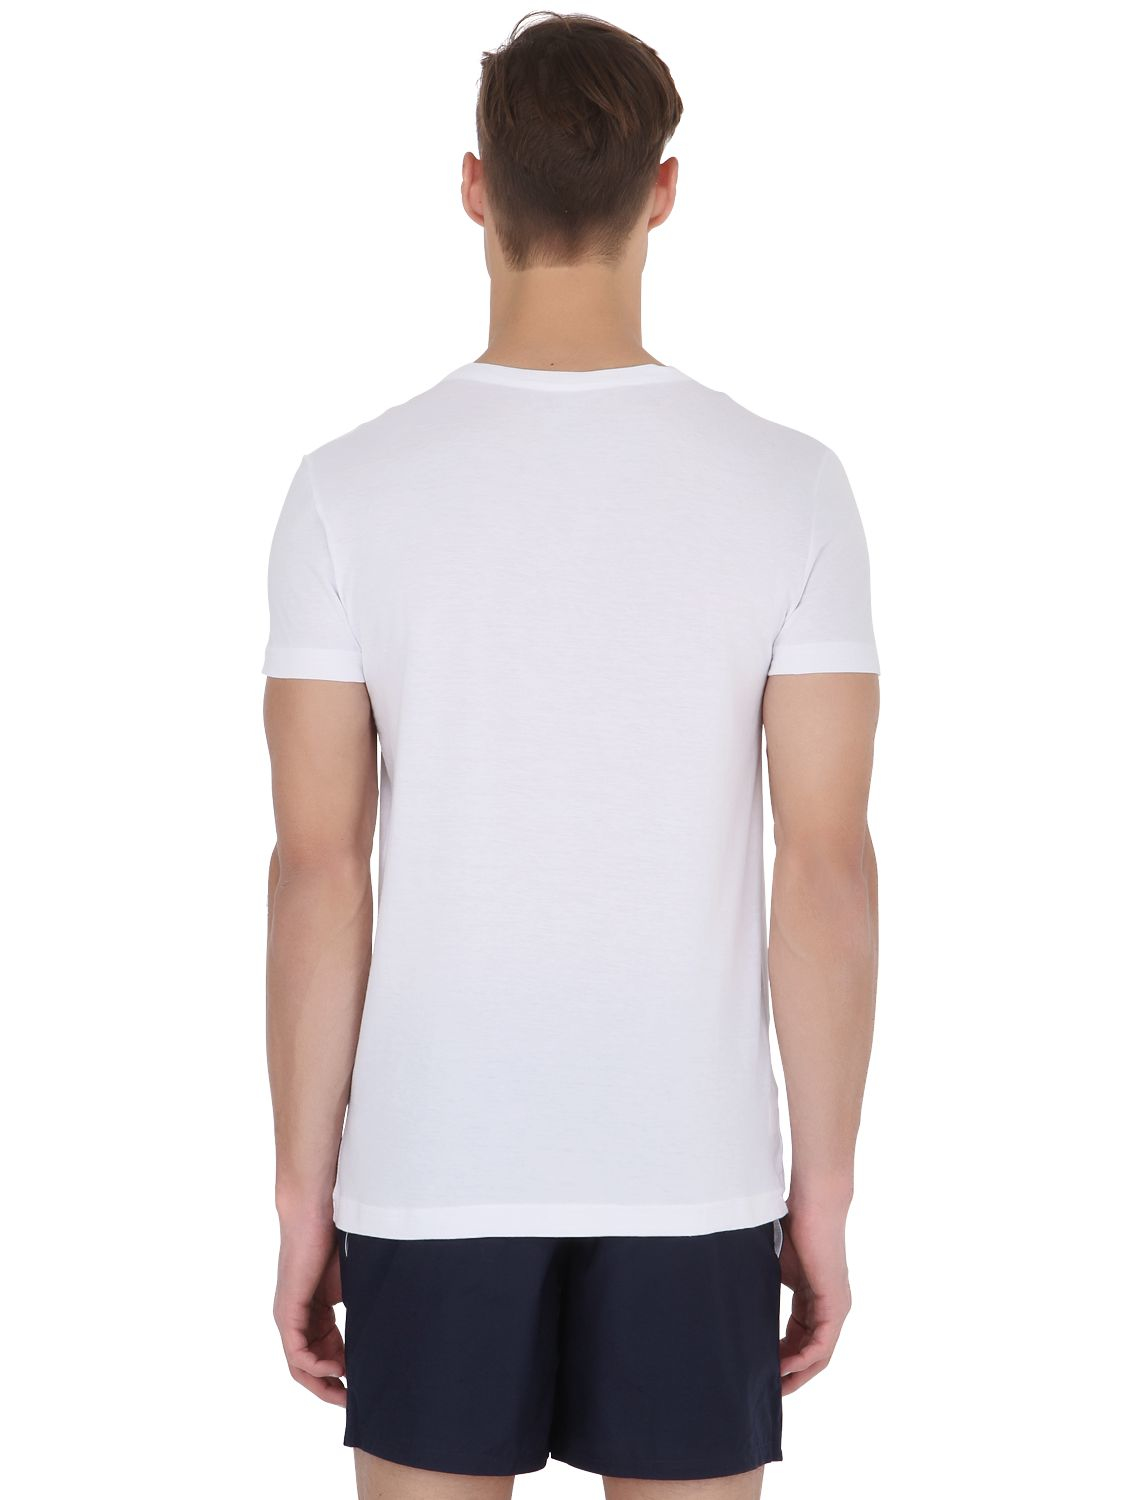 Quality Free Shipping Lacoste ULTRA LIGHTWEIGHT PIMA COTTON T-SHIRT New And Fashion Top Quality 6Gc0Lp